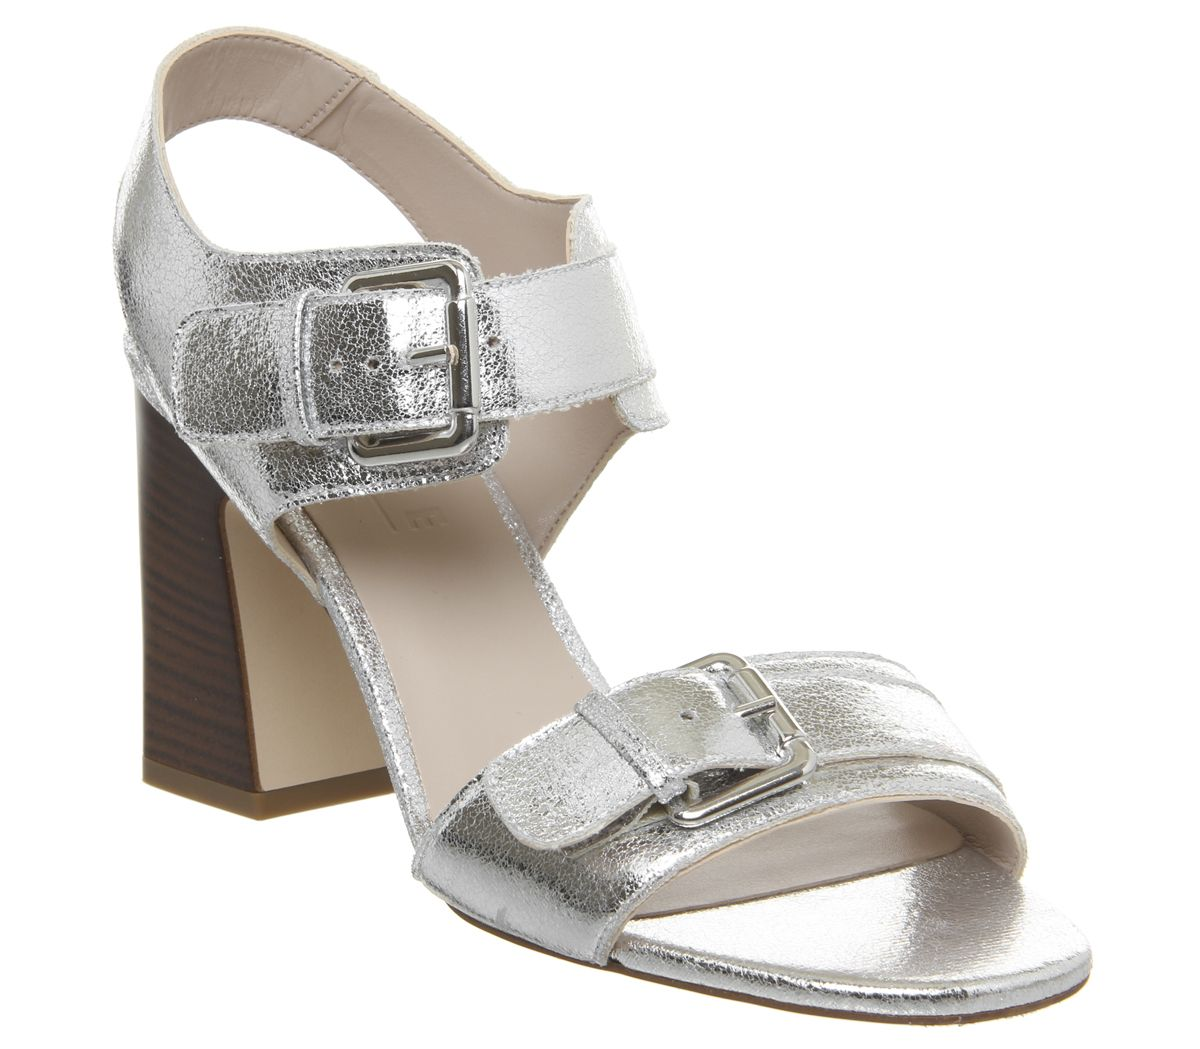 Womens Office Melanie Two Part Buckle Sandal Silver Crackled Leather Heels